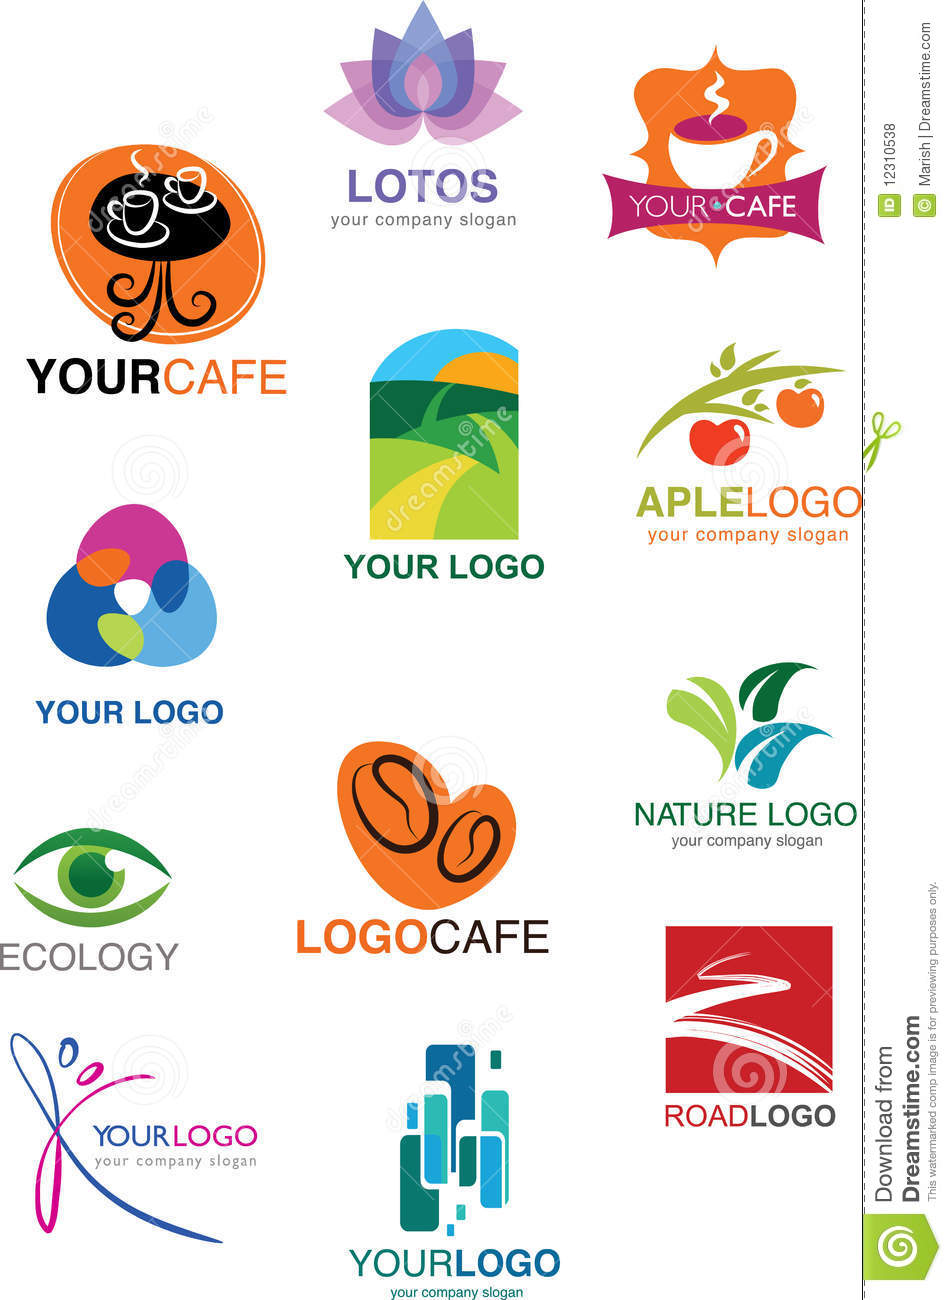 Restaurant Logos And Their Names